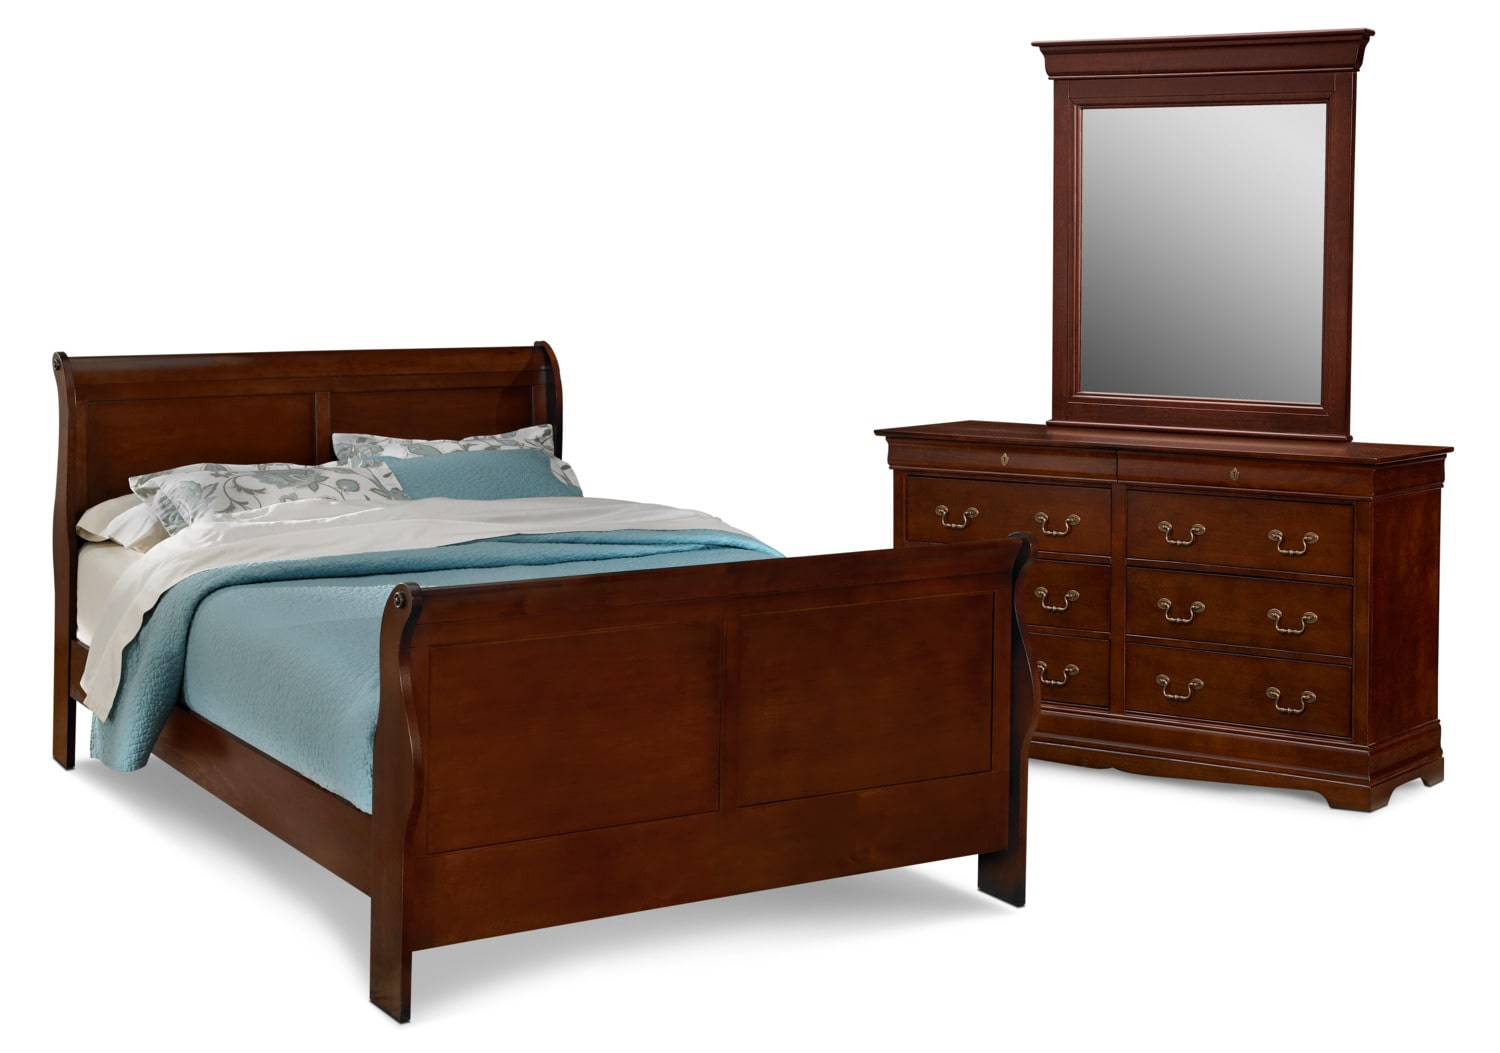 Bedroom Furniture - Neo Classic 5-Piece Bedroom Set with Dresser and Mirror